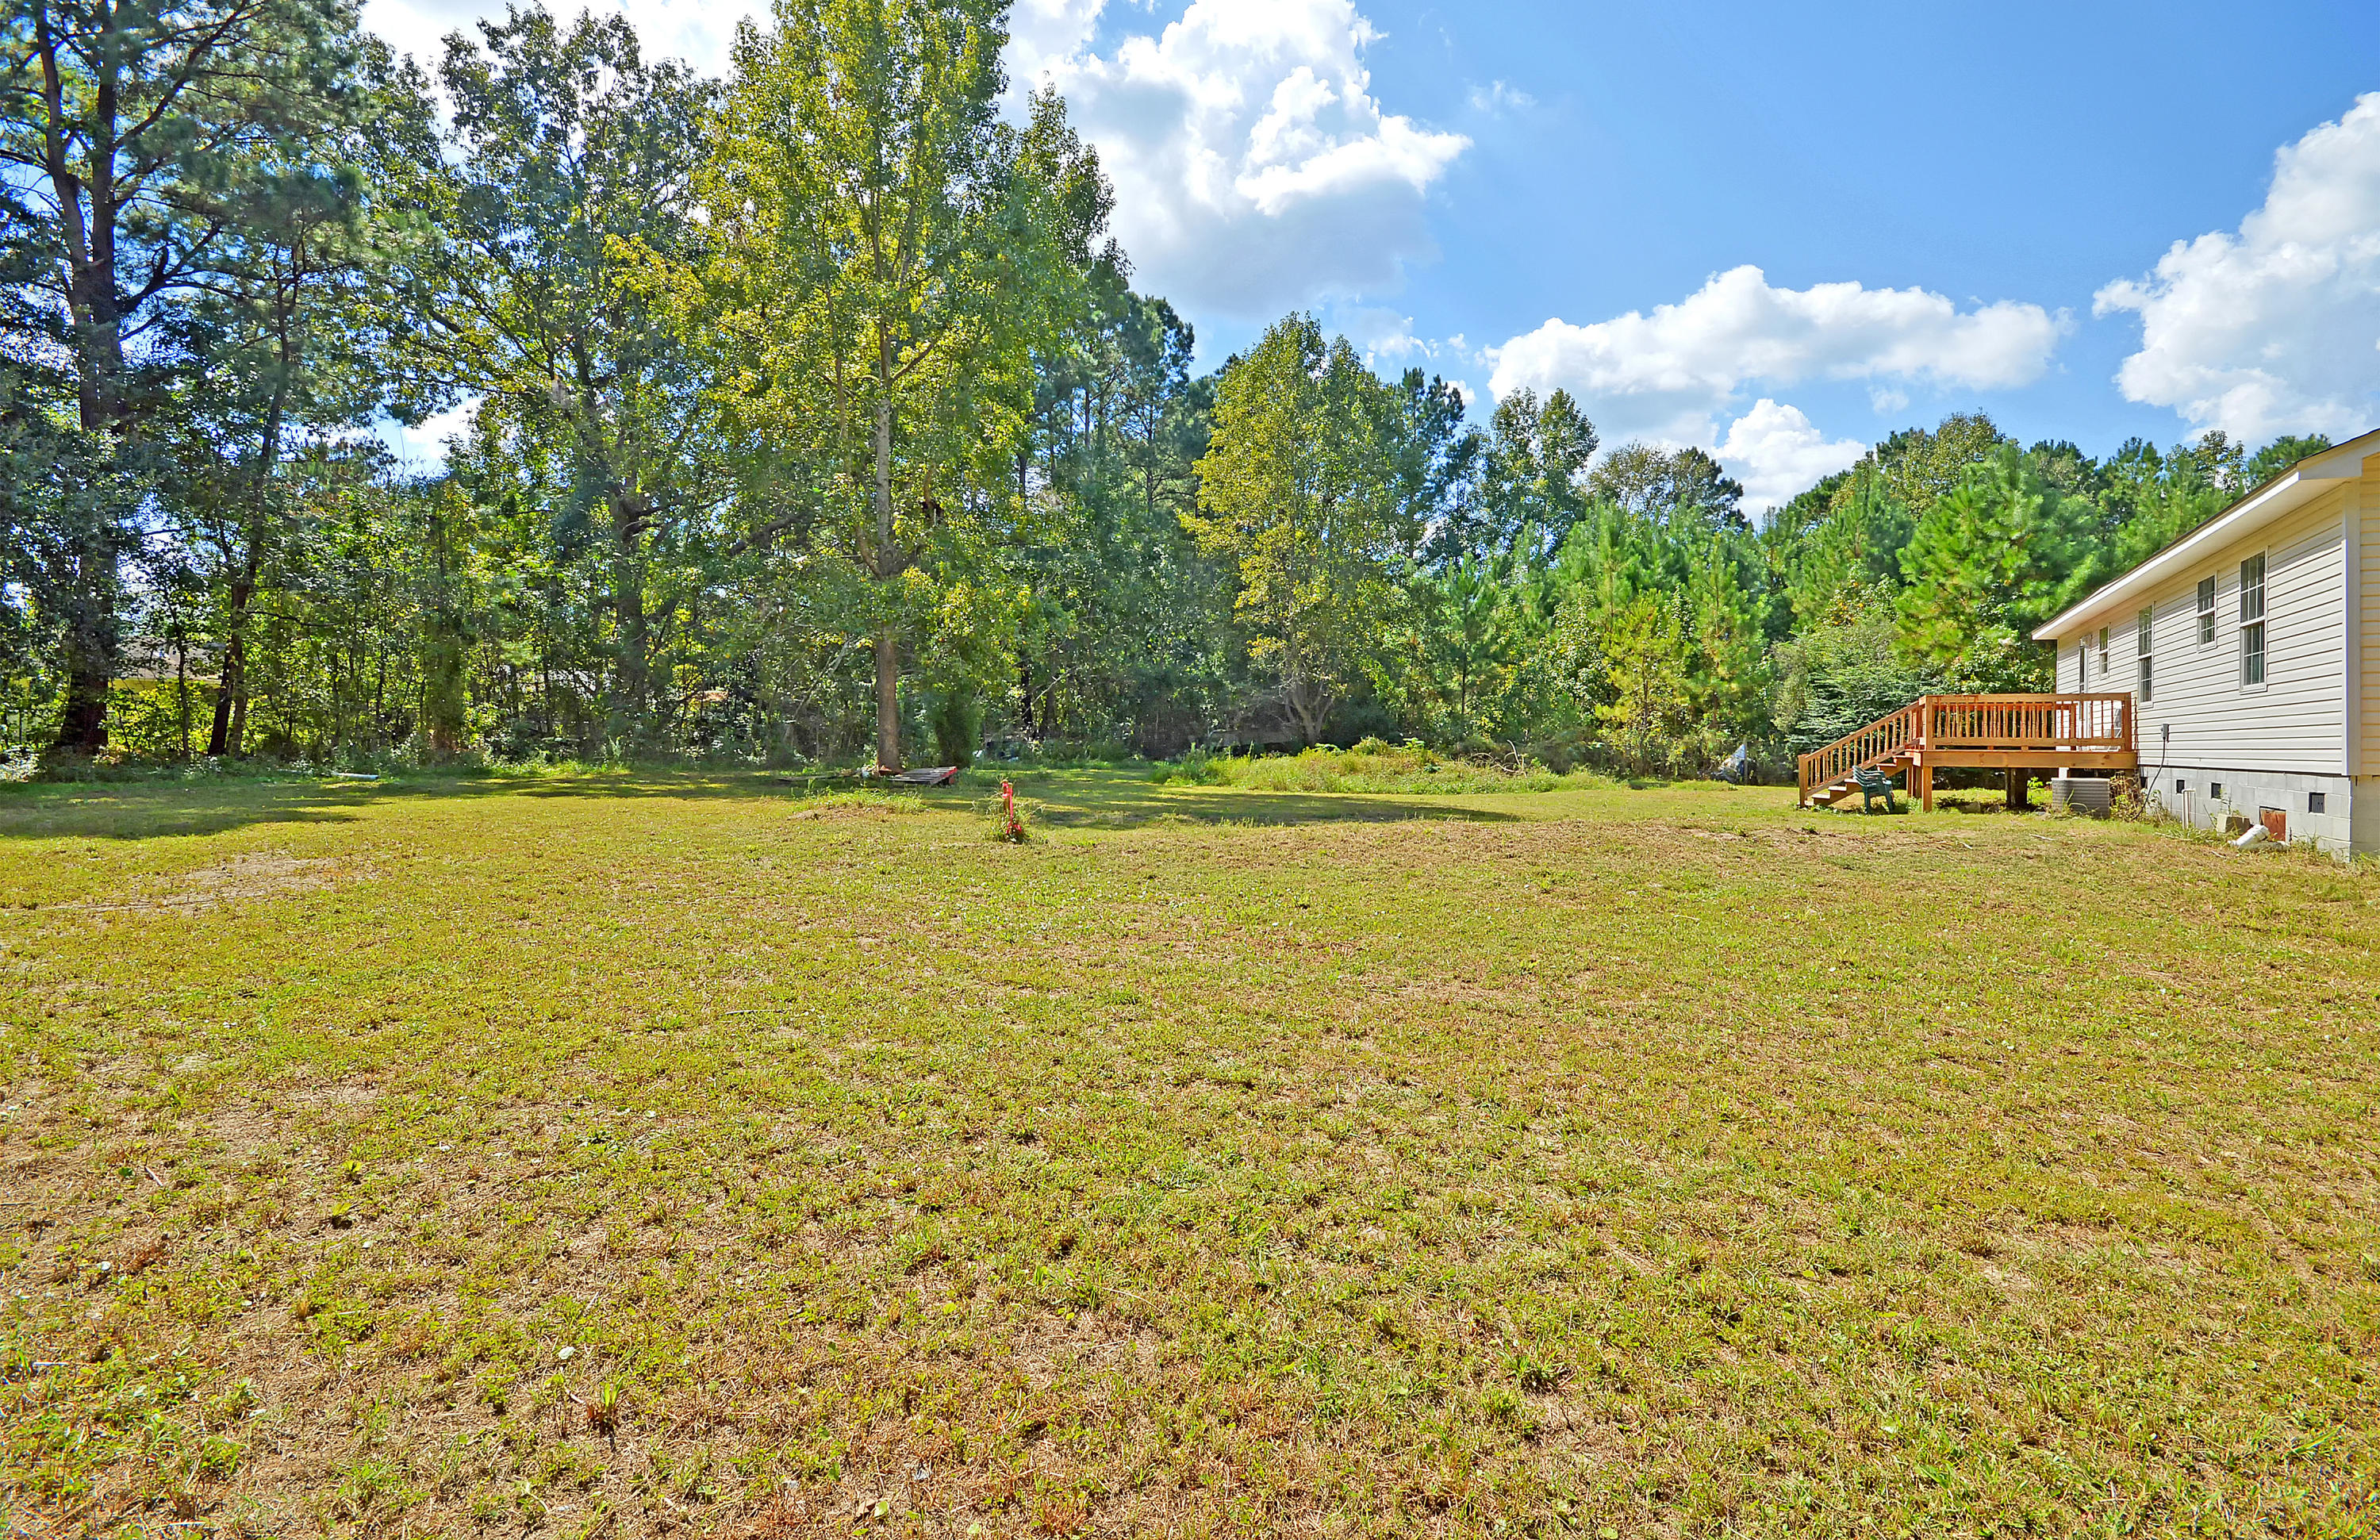 Lazy Acres Homes For Sale - 135 Lazy Acres, Summerville, SC - 24